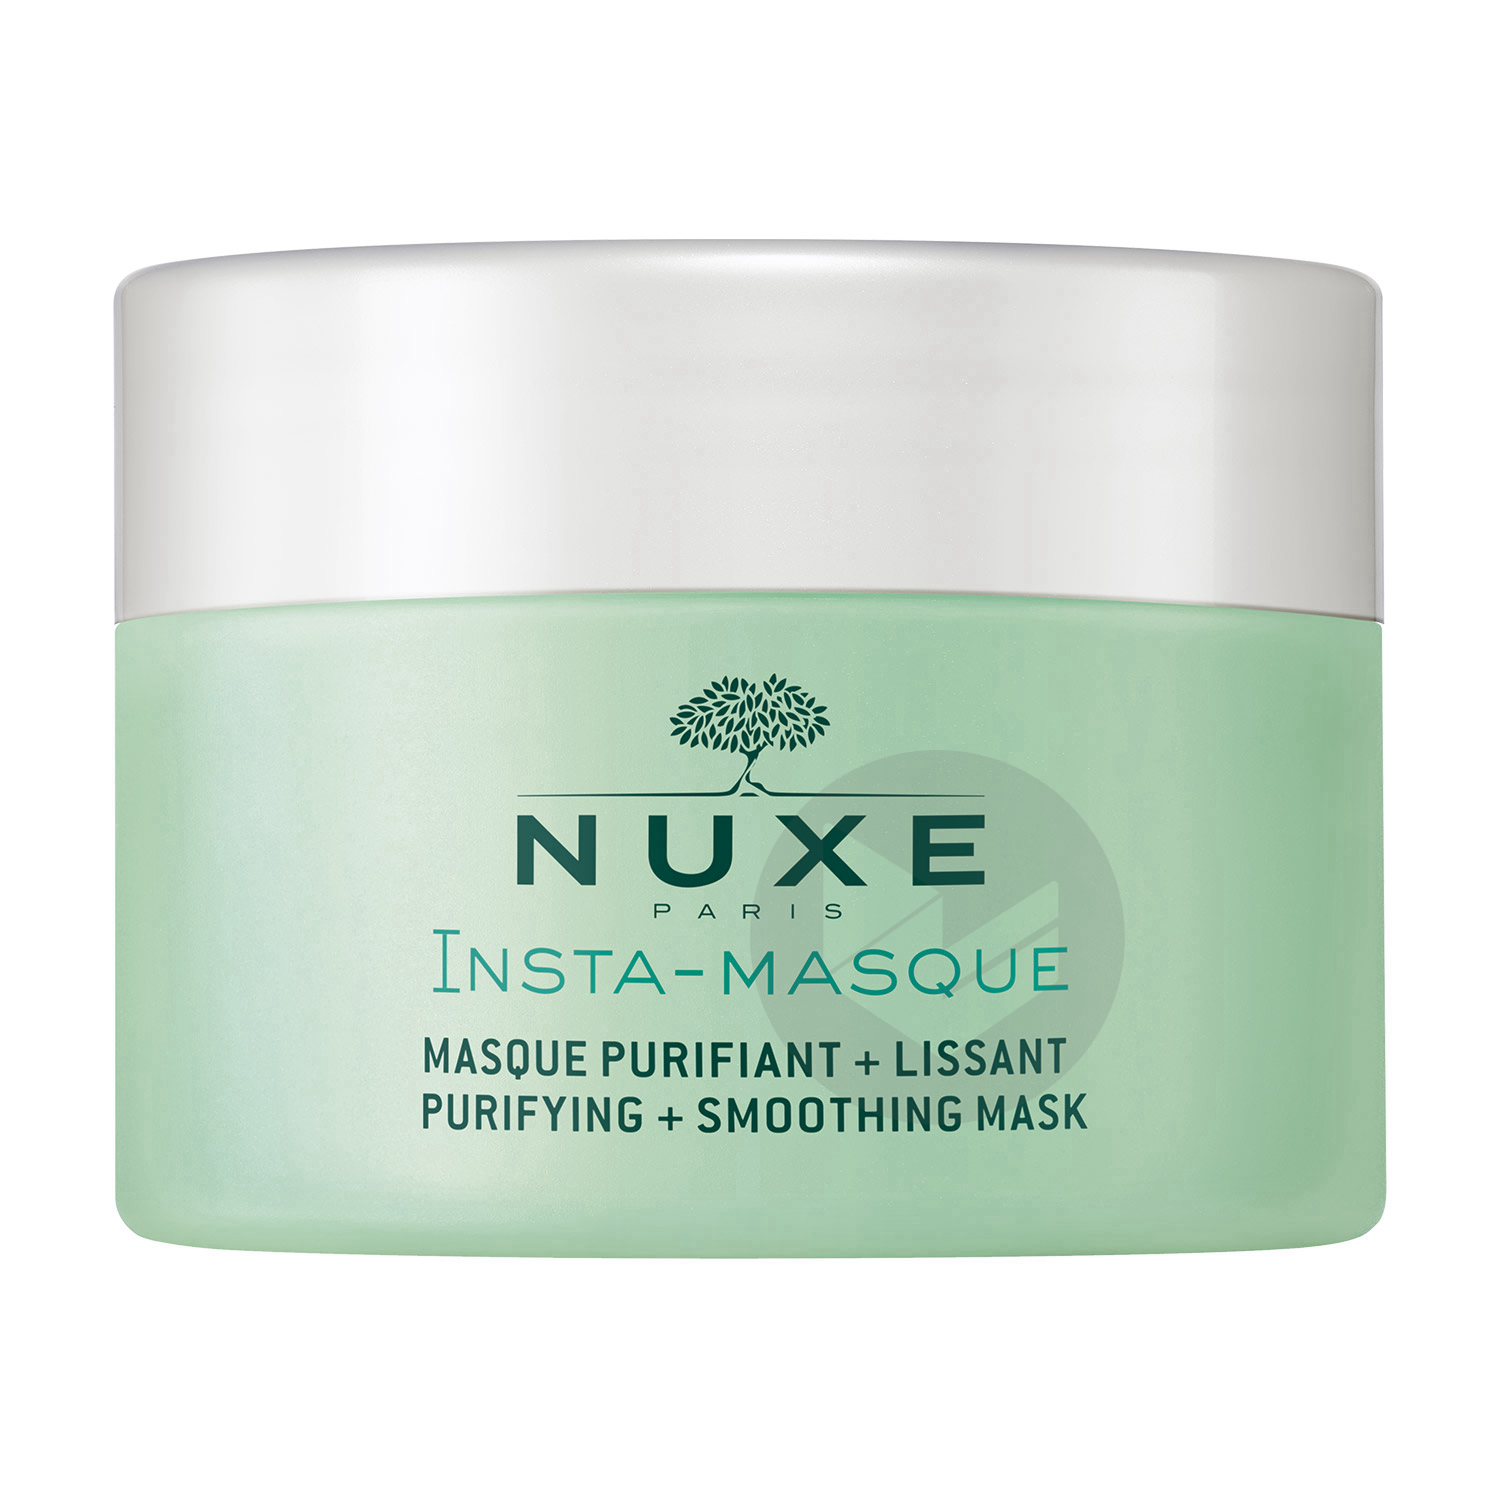 Insta Masque Masque Purifiant Lissant